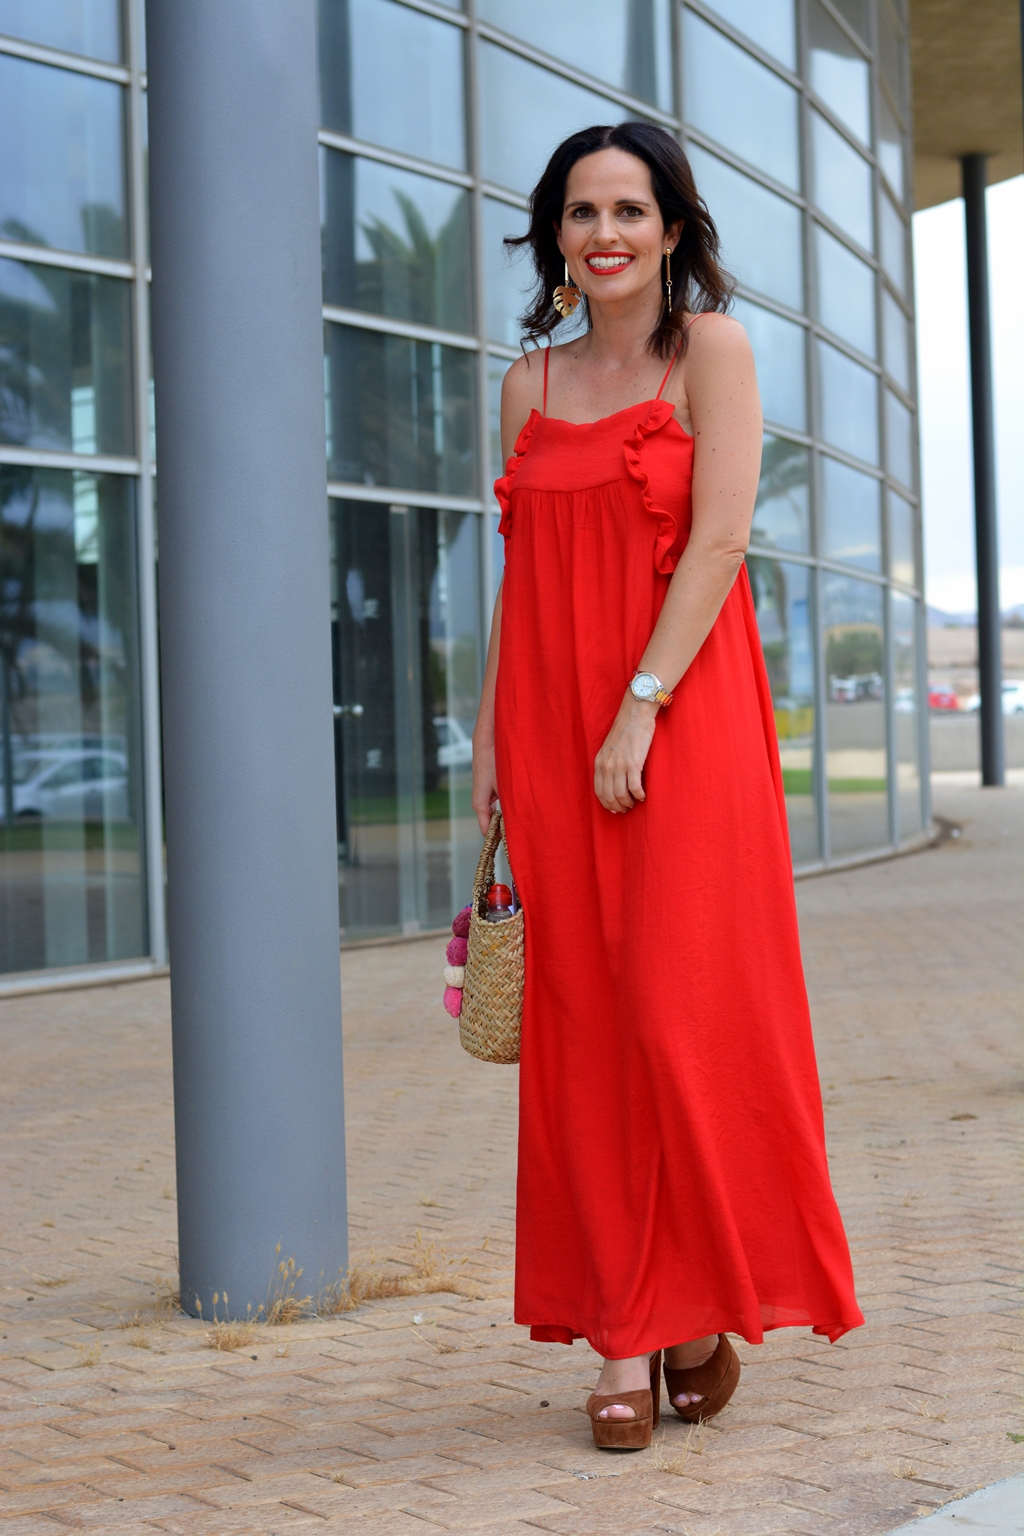 zara-red-dress-outfit-streetstyle